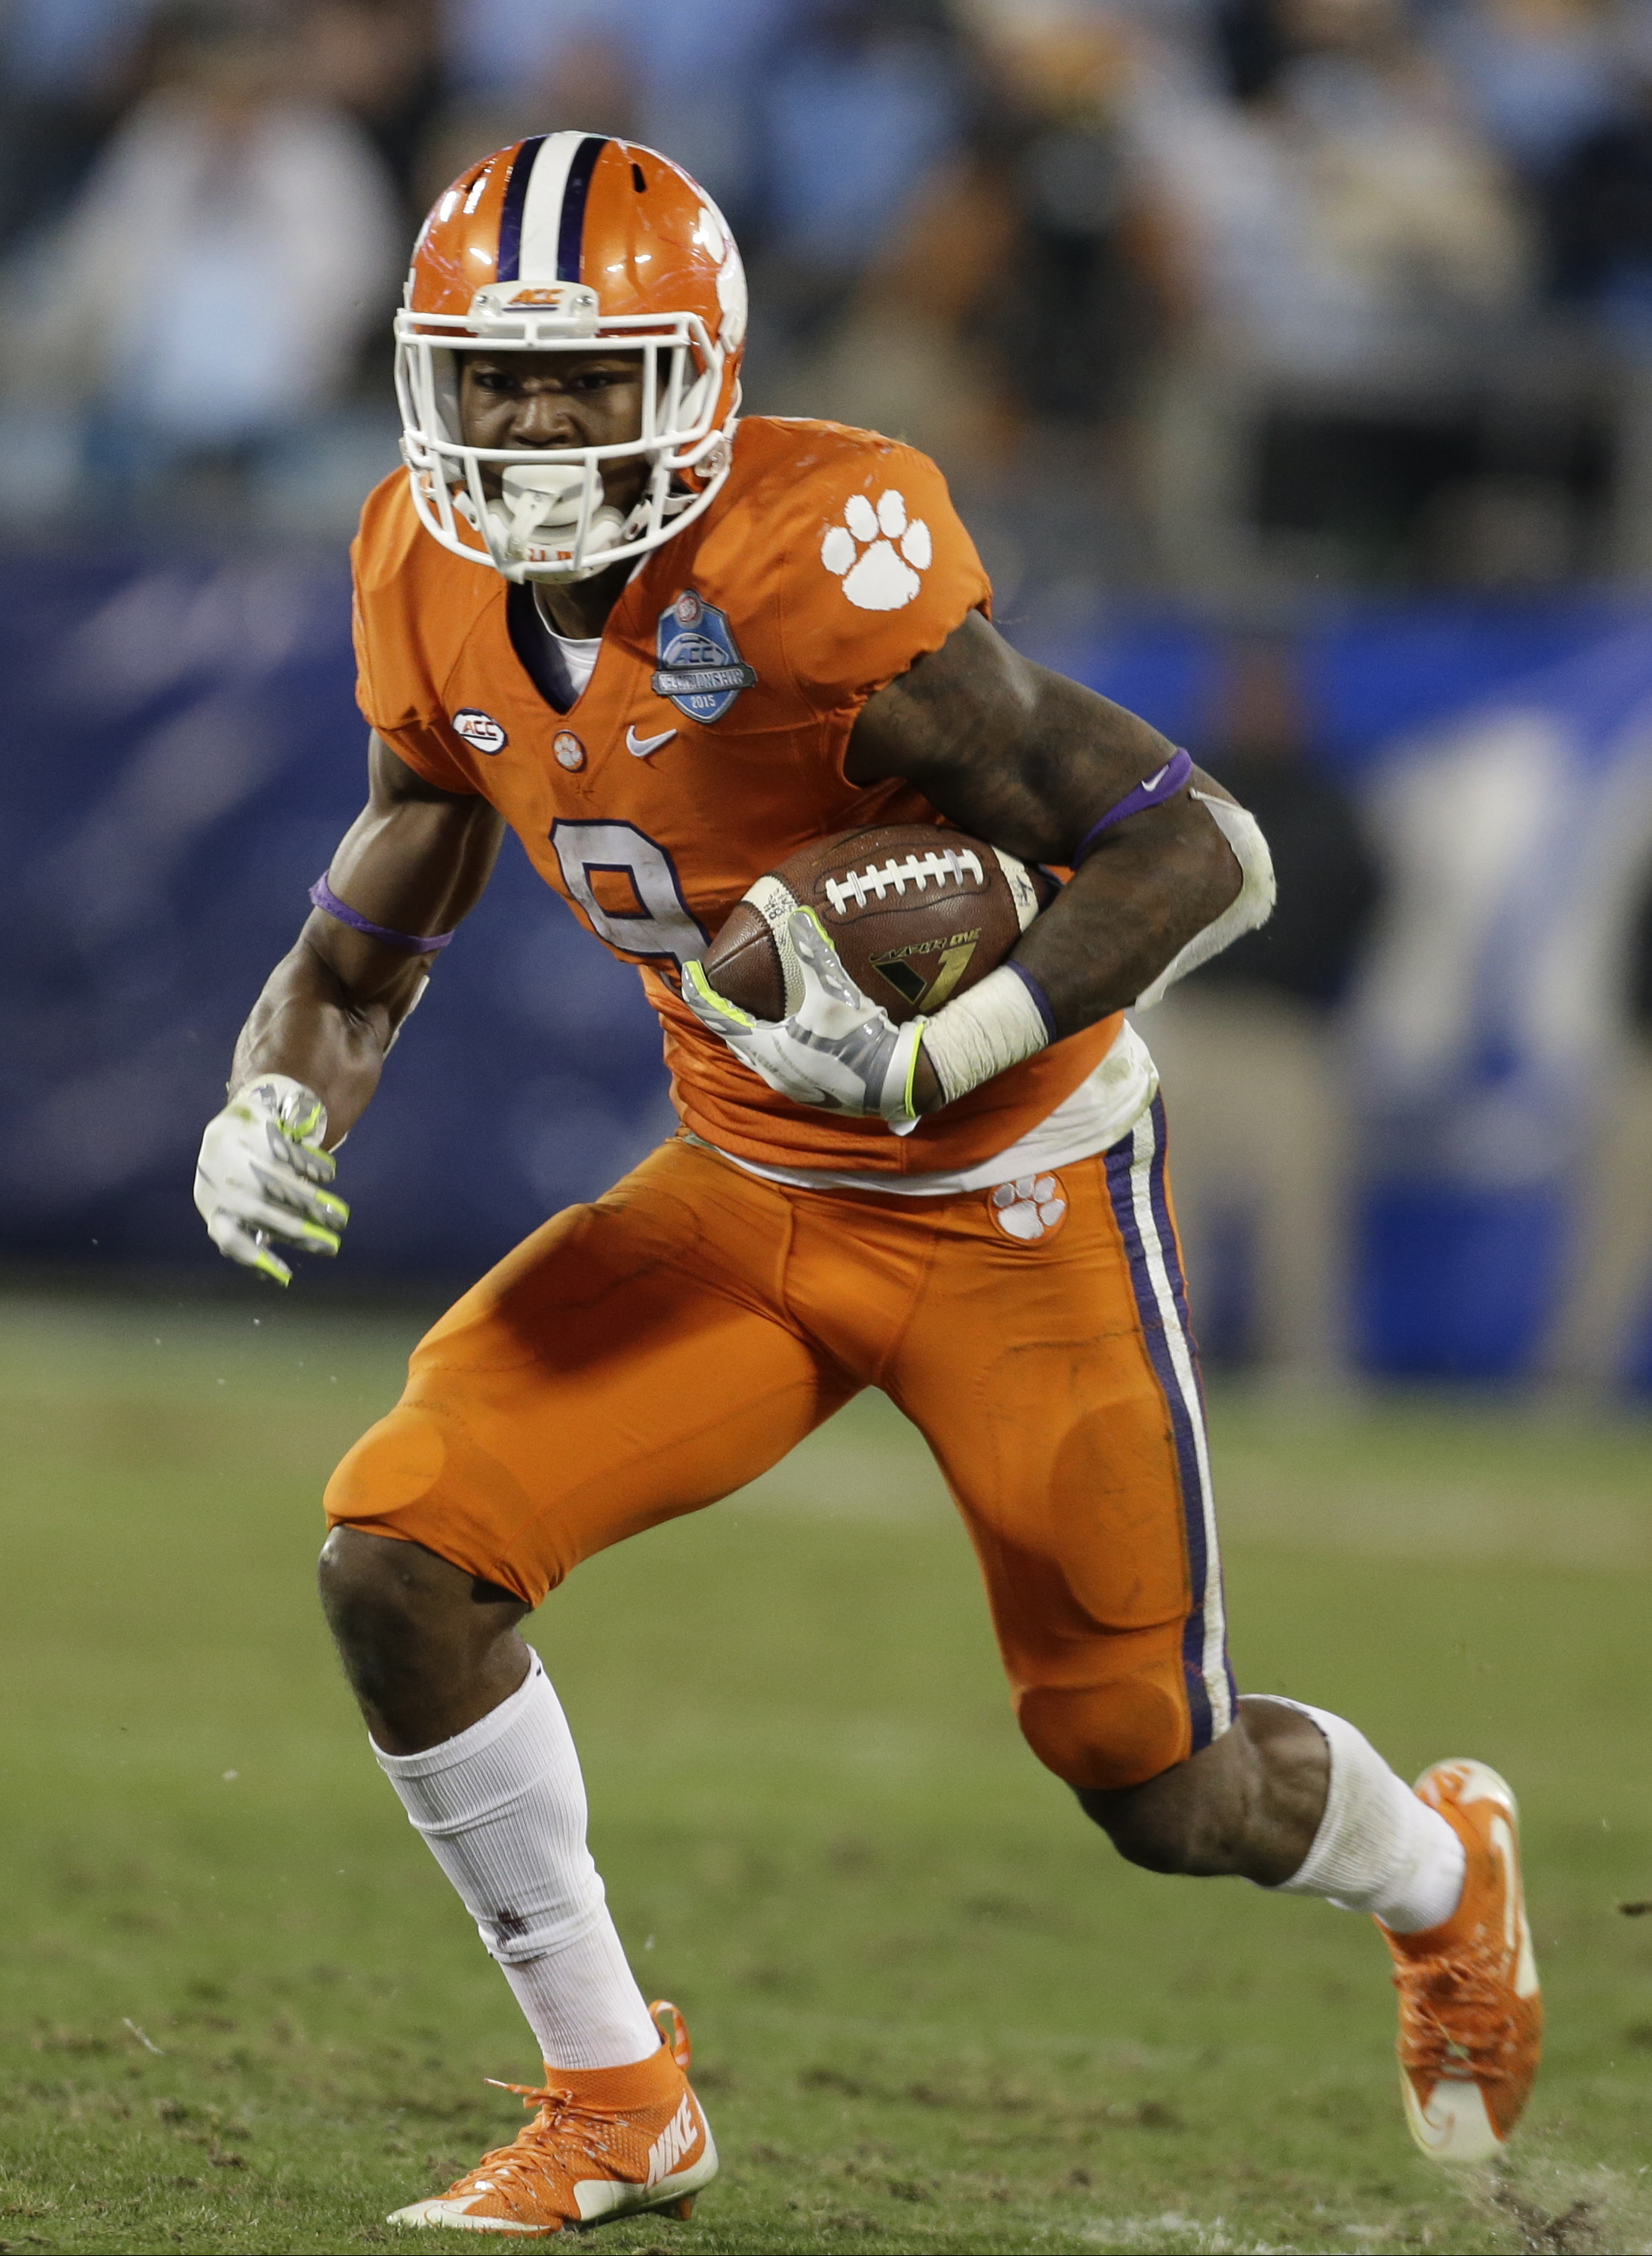 FILE - In this Dec. 5, 2015, file photo, Clemson's Wayne Gallman (9) runs against North Carolina during the second half of the Atlantic Coast Conference championship NCAA college football game in Charlotte, N.C. Gallman set Clemson's single-season rushing